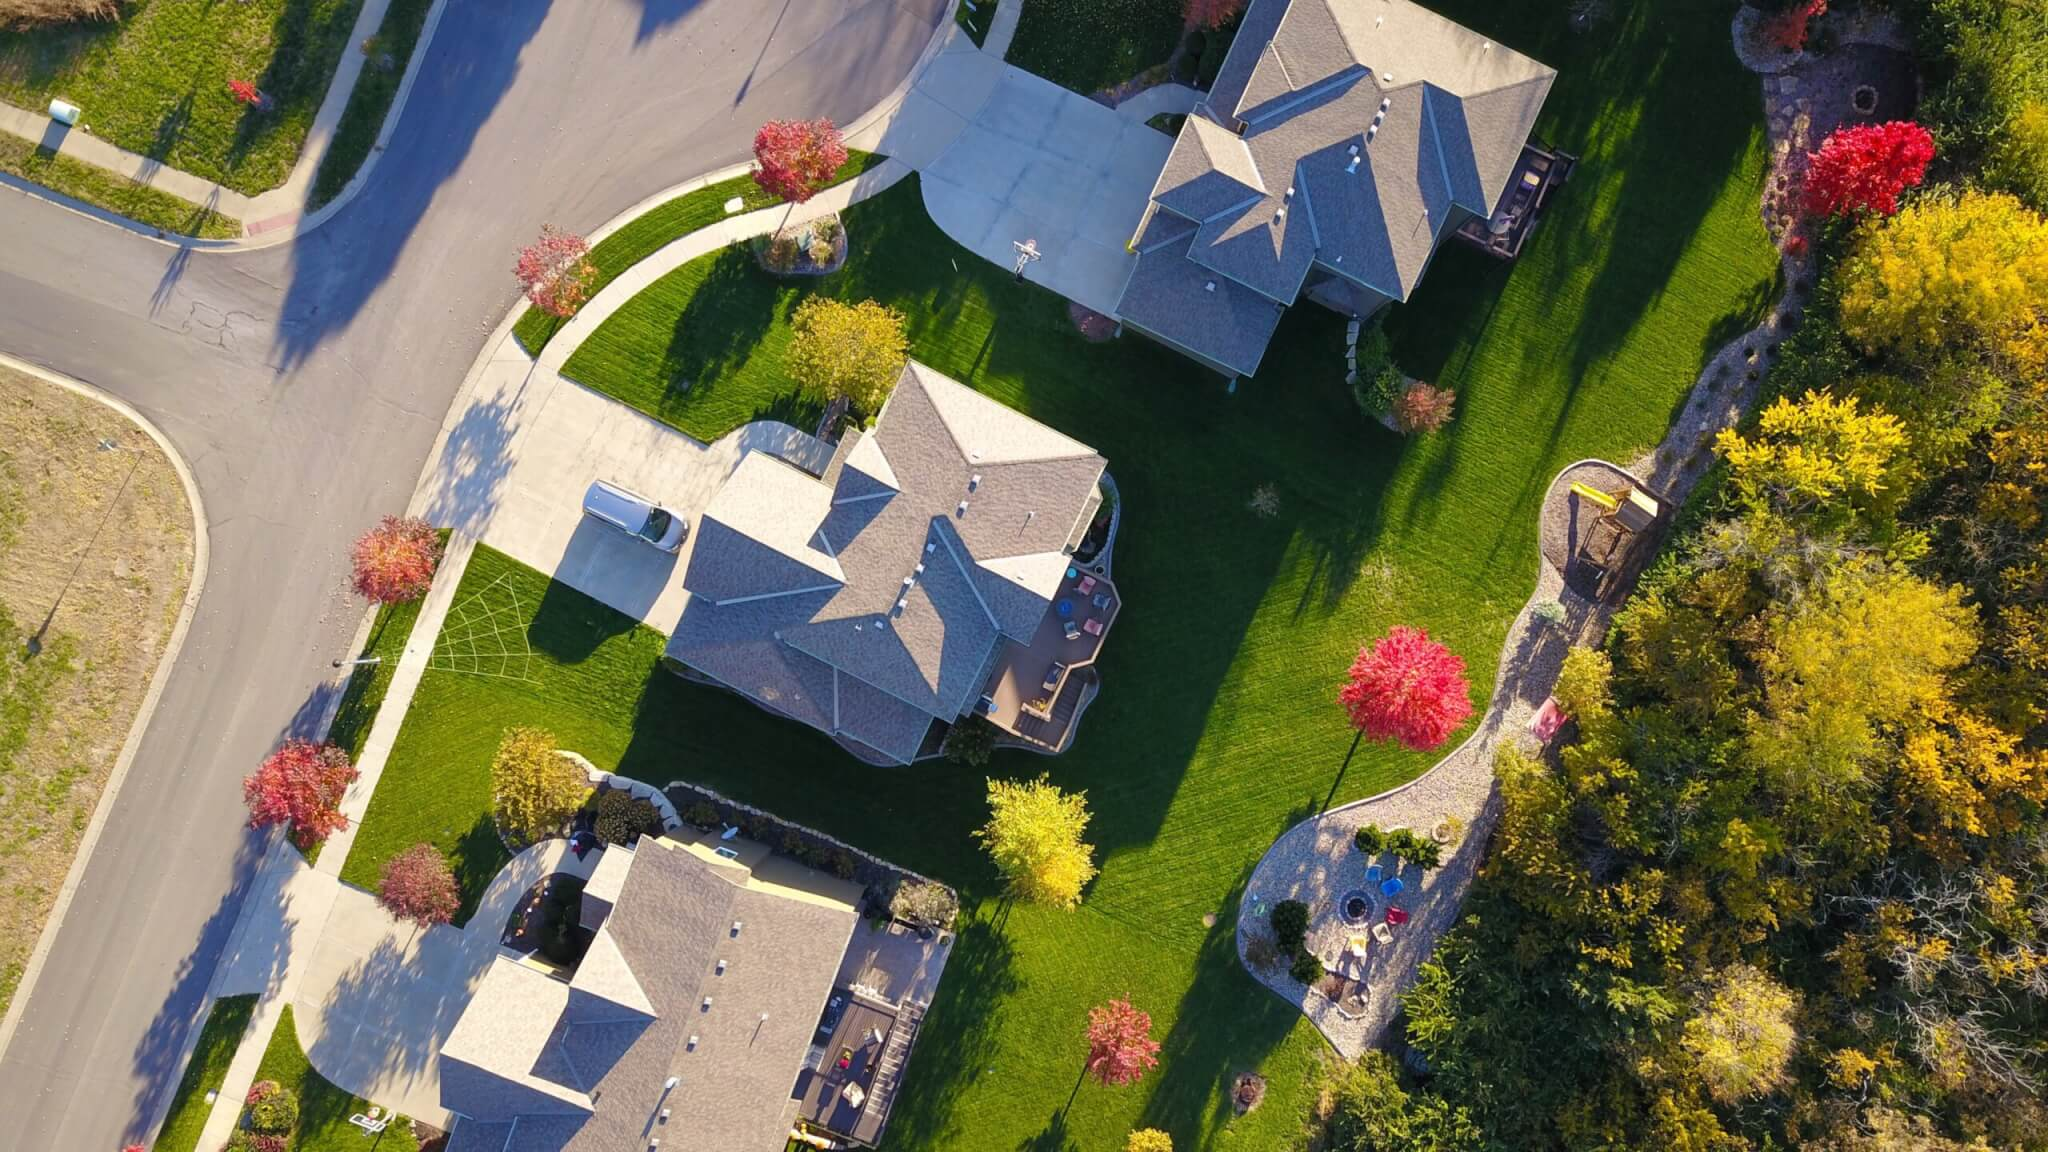 Did you know...EVERY owner in the neighborhood is part of the HOA?